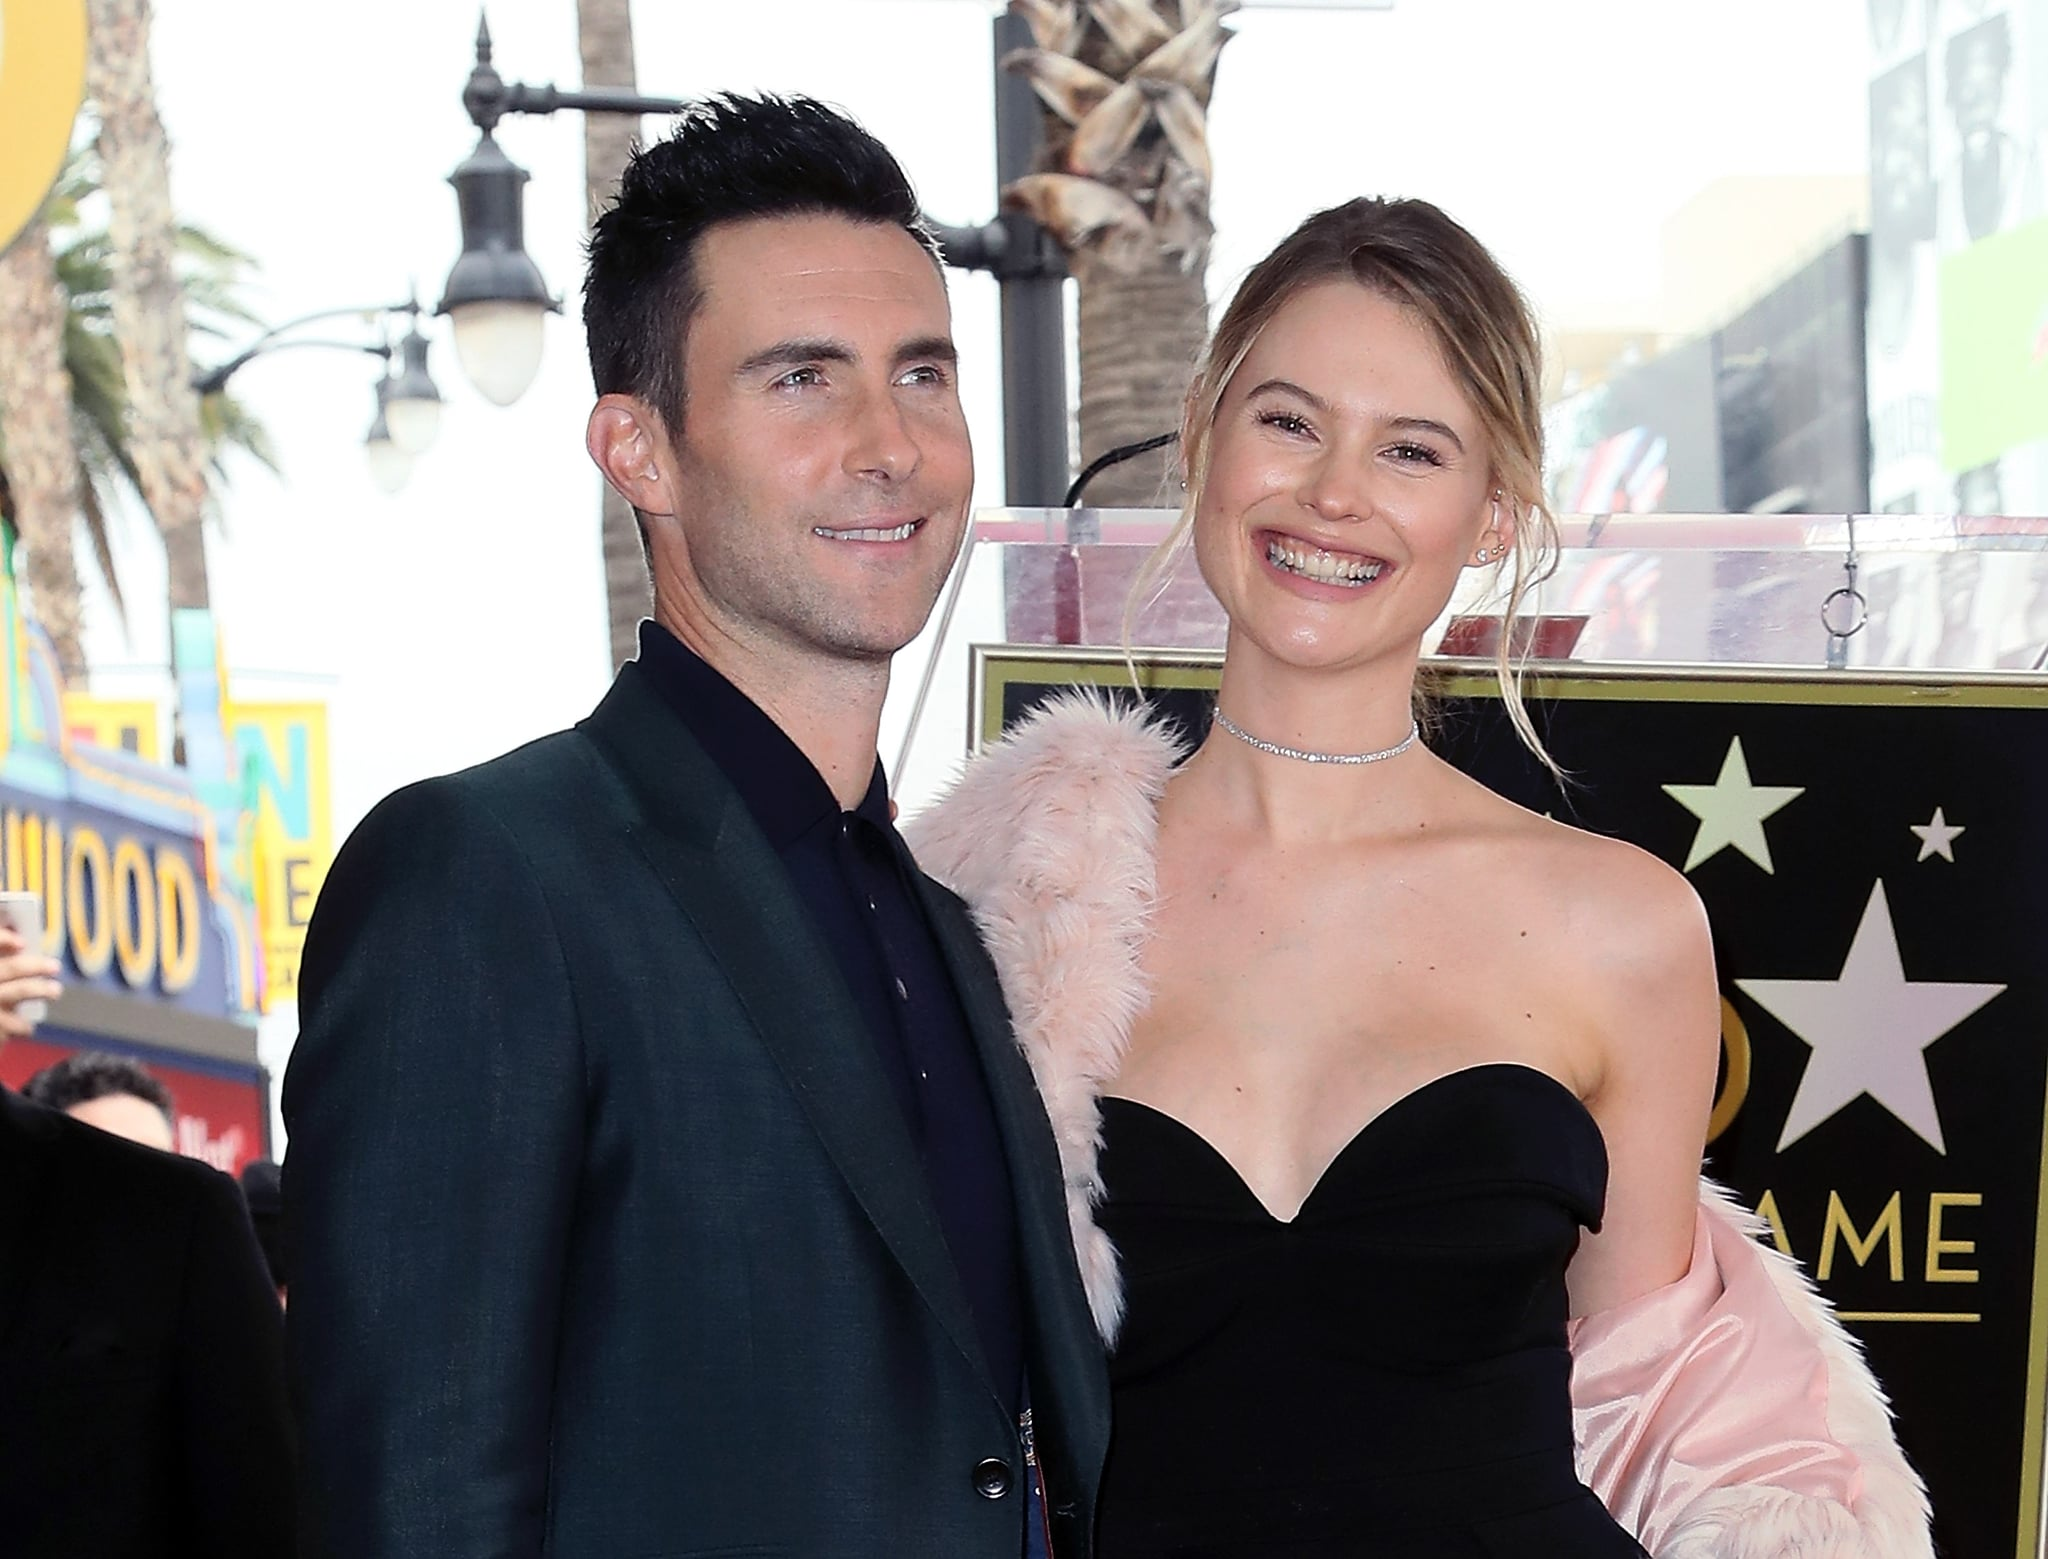 HOLLYWOOD, CA - FEBRUARY 10:  Recording artist Adam Levine (L) and wife model Behati Prinsloo attend his being honoured with a Star on the Hollywood Walk of Fame on February 10, 2017 in Hollywood, California.  (Photo by David Livingston/Getty Images)